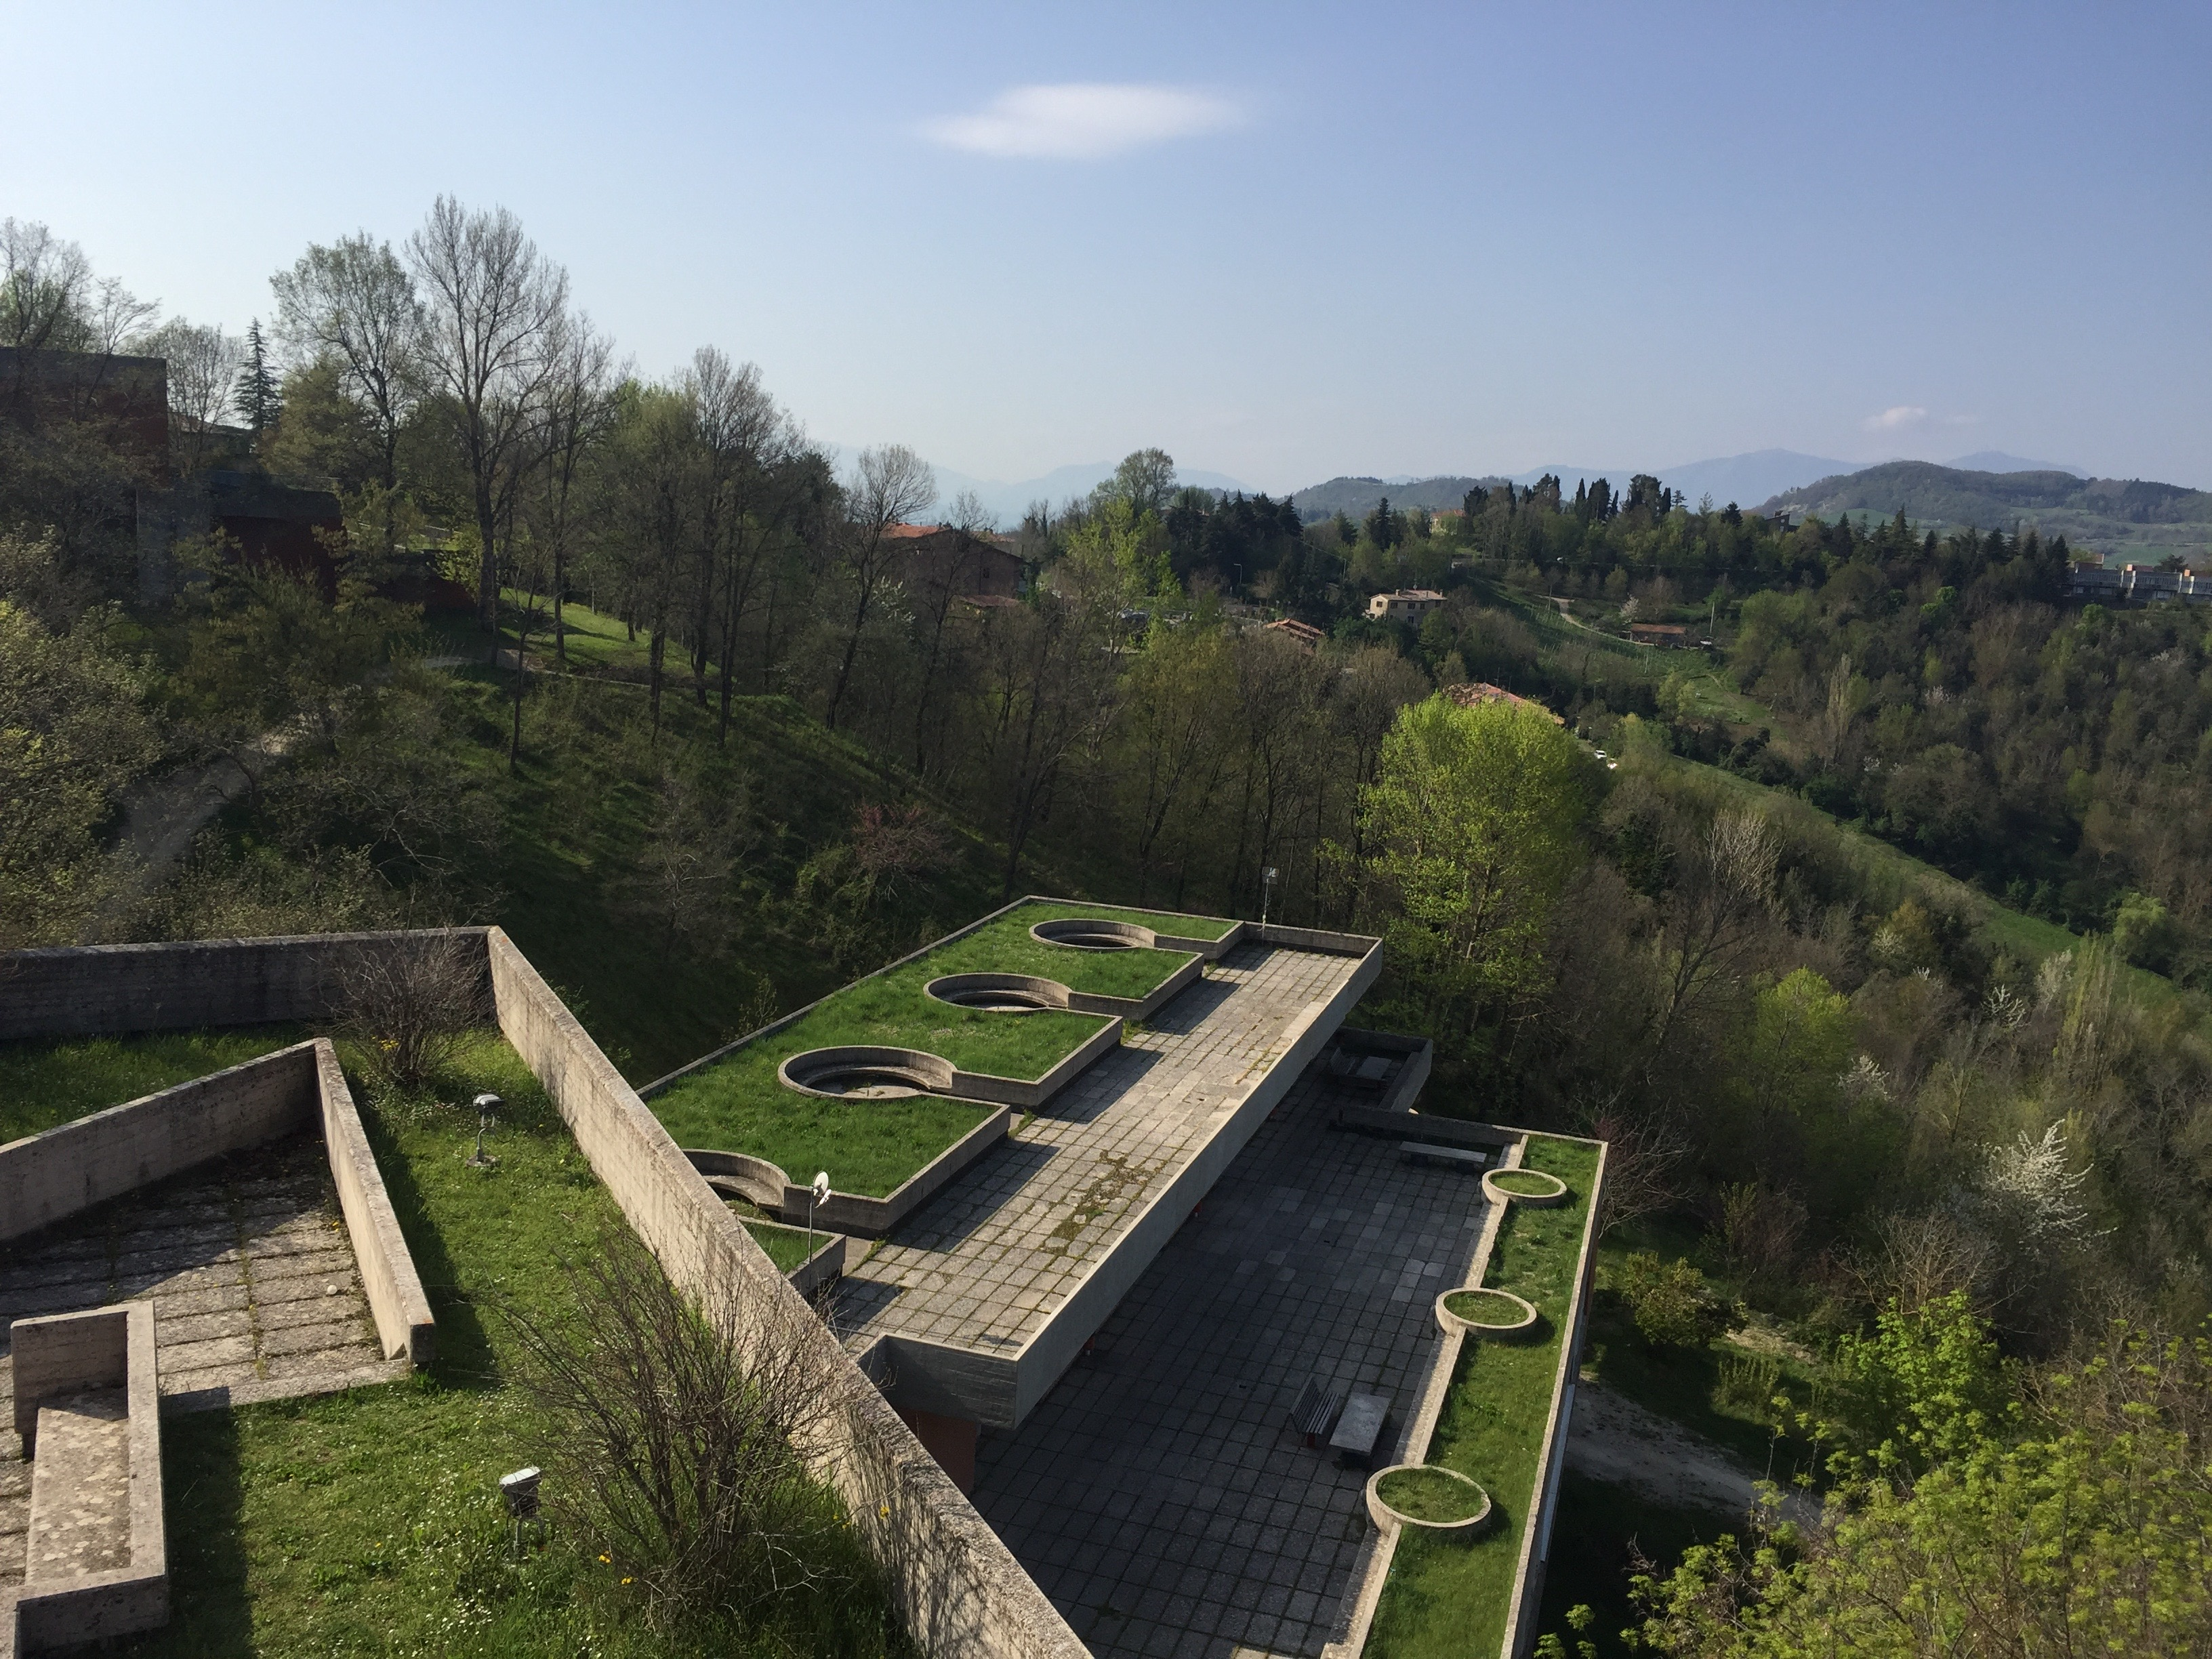 From the top of Aquilone, you can see the beautiful round rooftop gardens. Photo by Bridget Hepworth